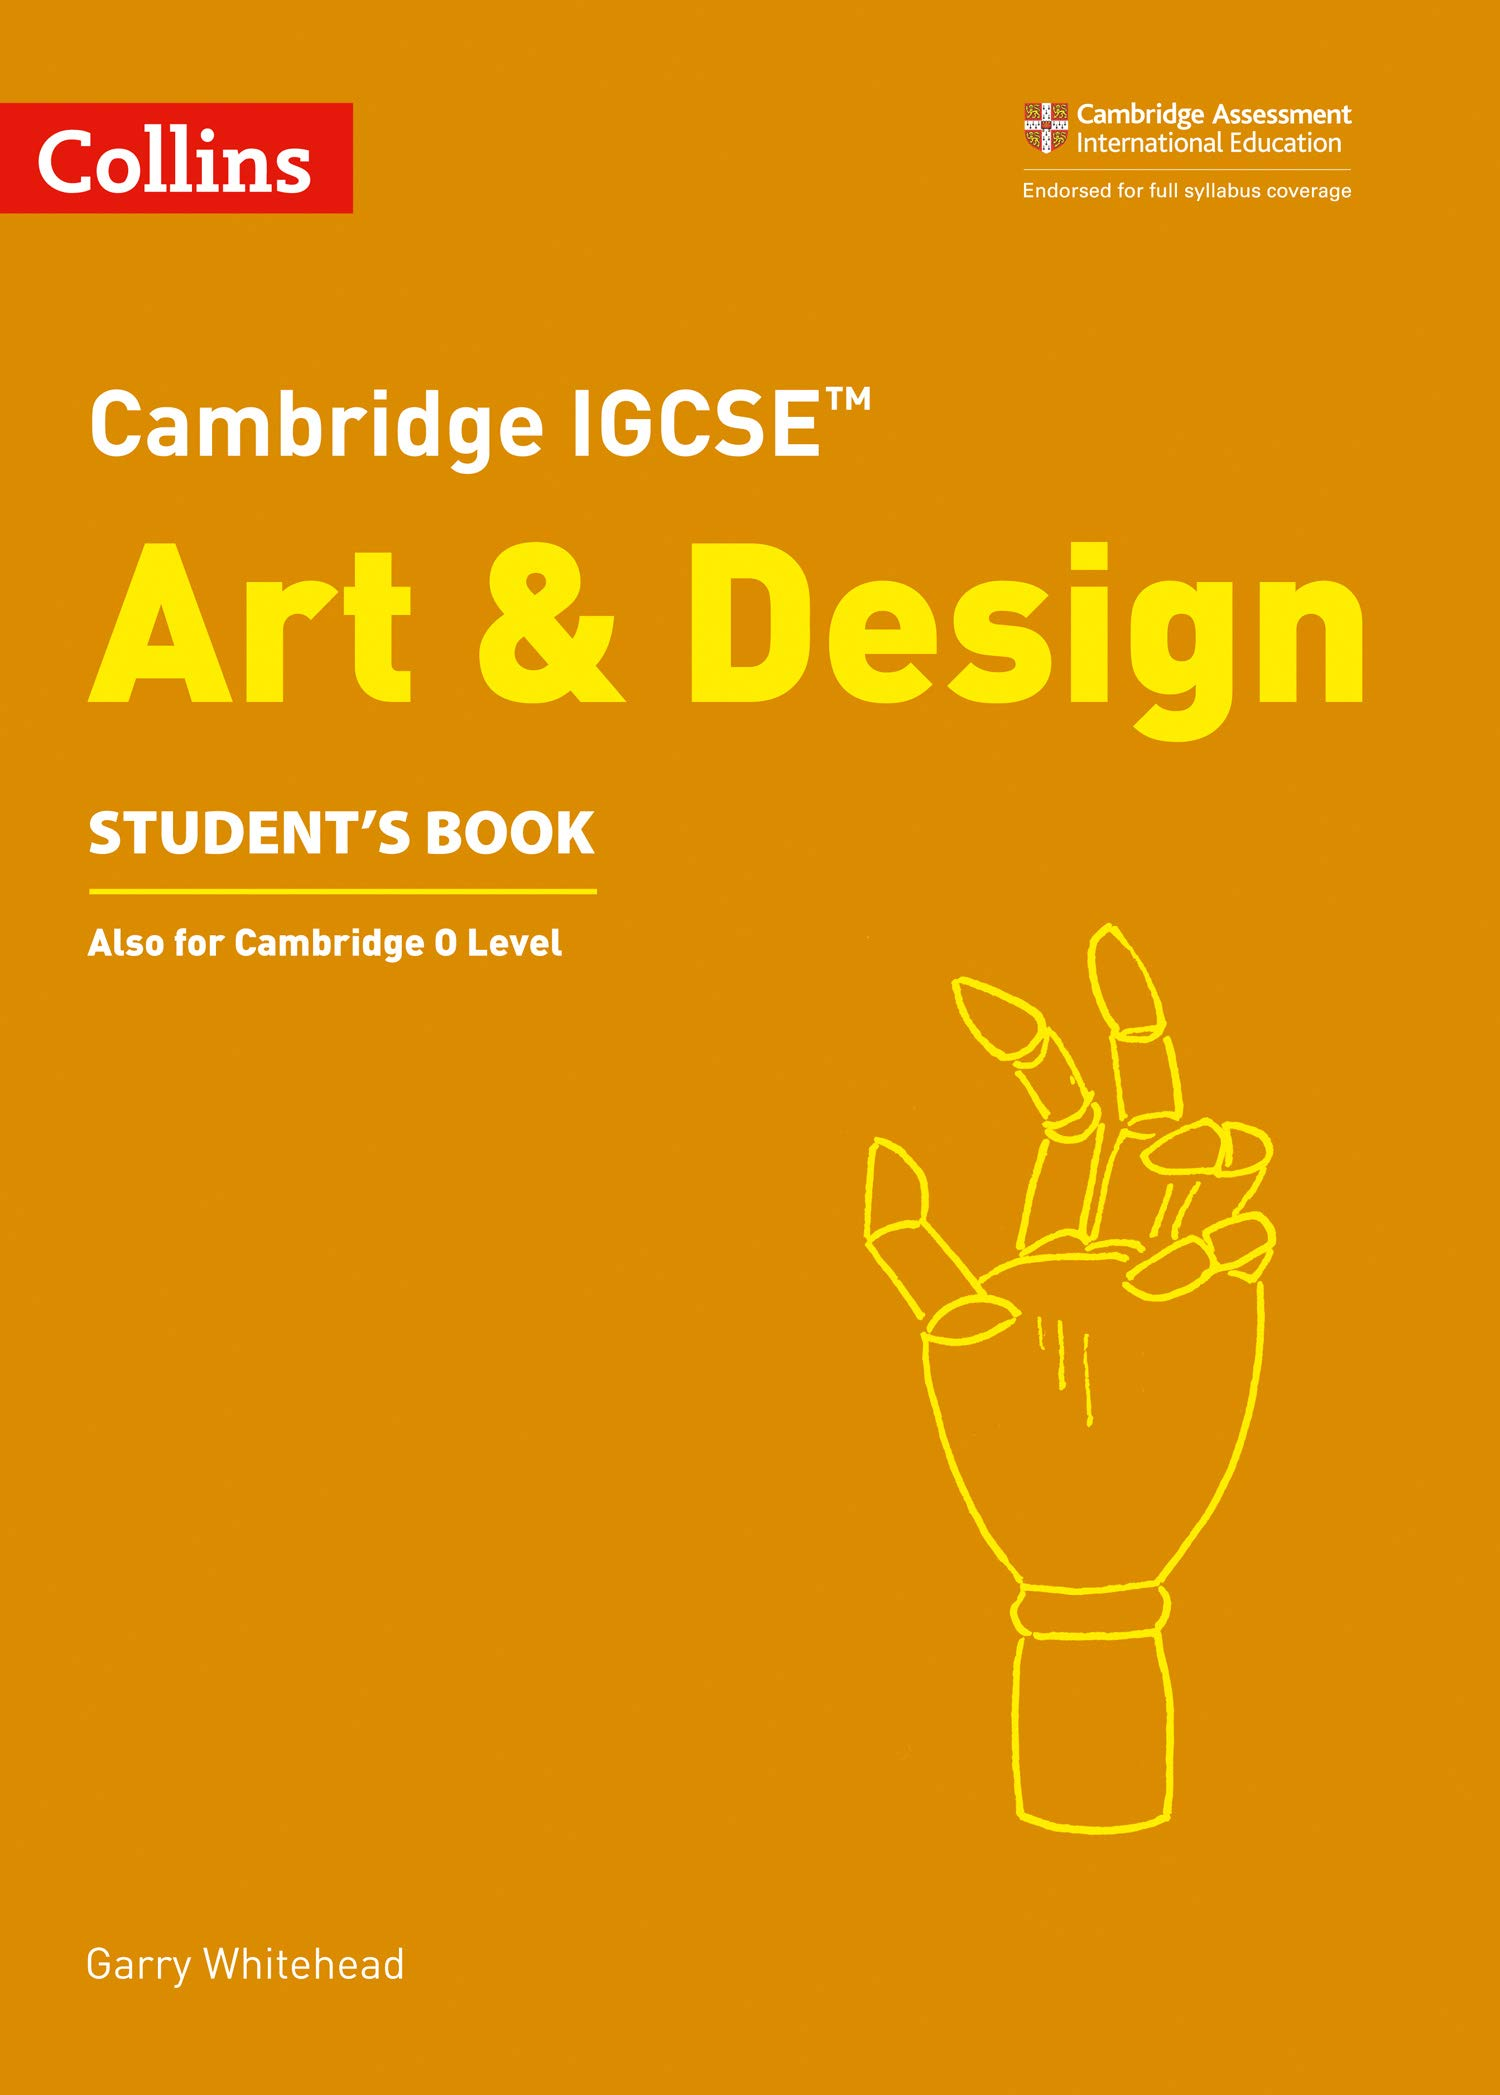 Image OfCambridge IGCSE™ Art And Design Student's Book (Collins Cambridge IGCSE™)